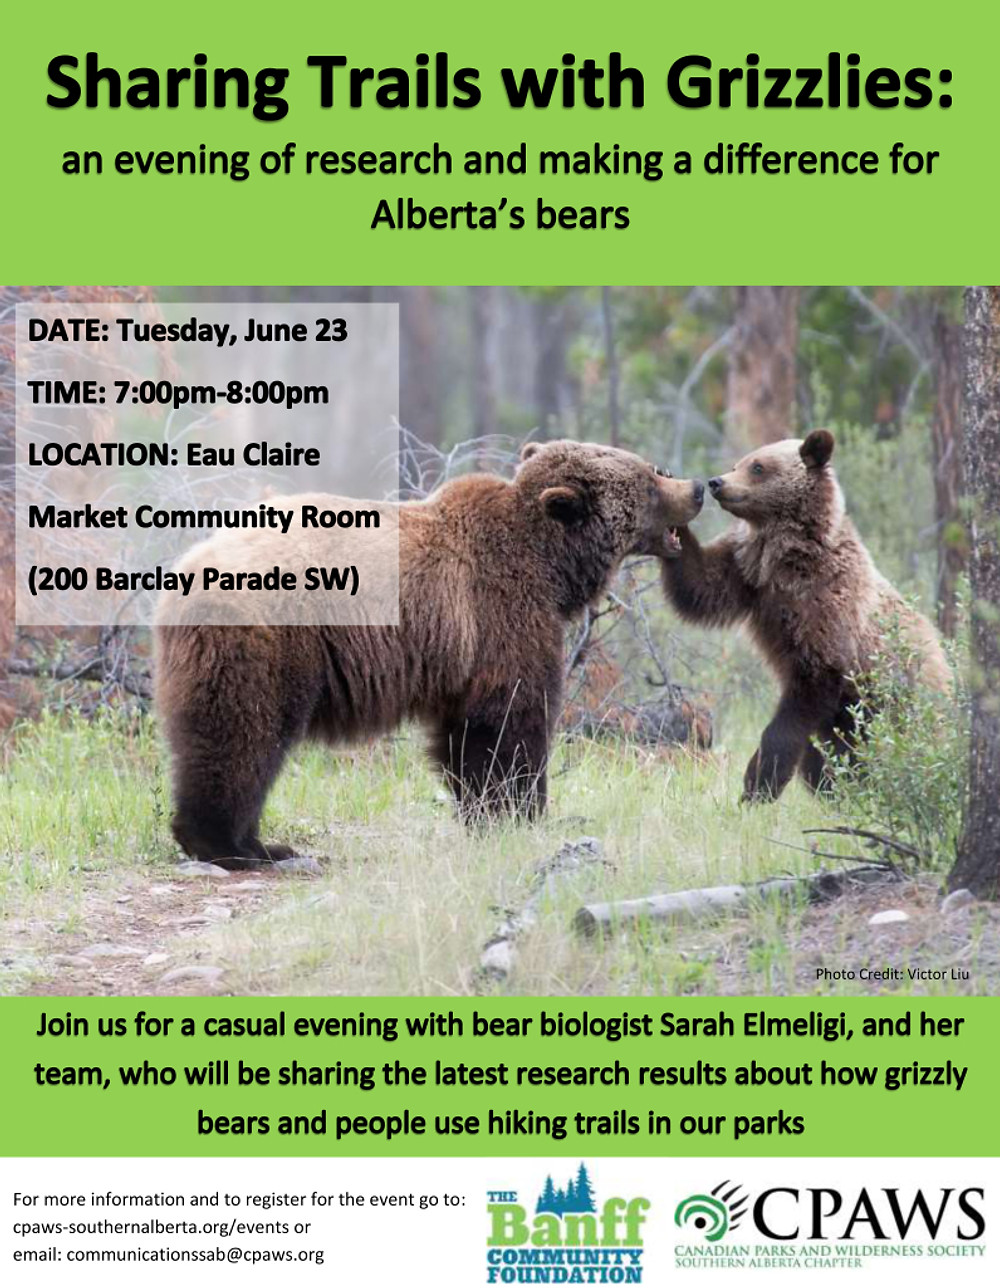 Sharing Trails with Grizzlies Poster June 23 2015